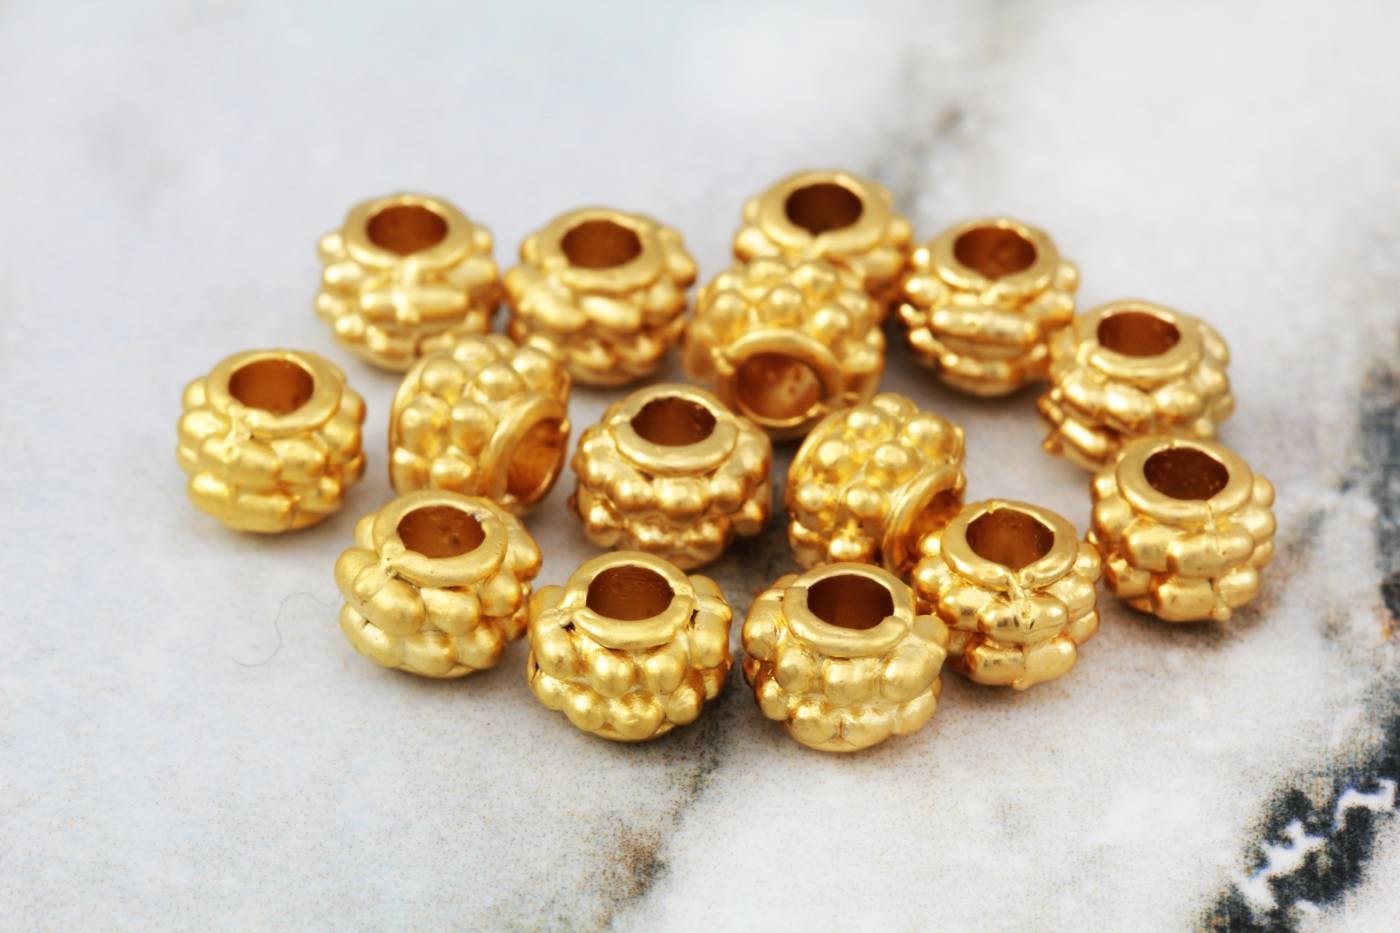 gold-plated-jewelry-spacer-bead-findings.jpg